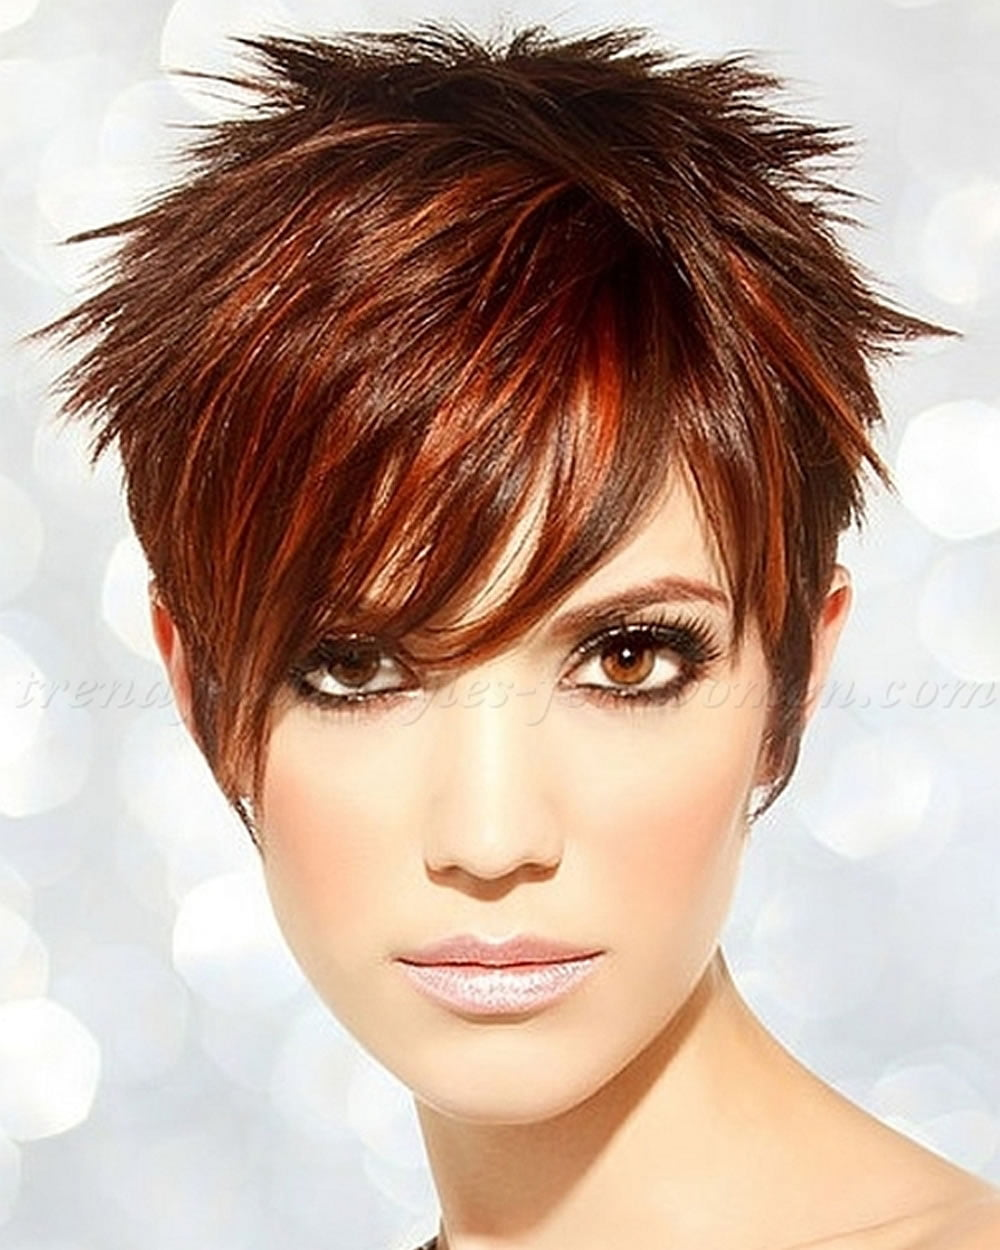 Short Spiky Haircuts Hairstyles for Women